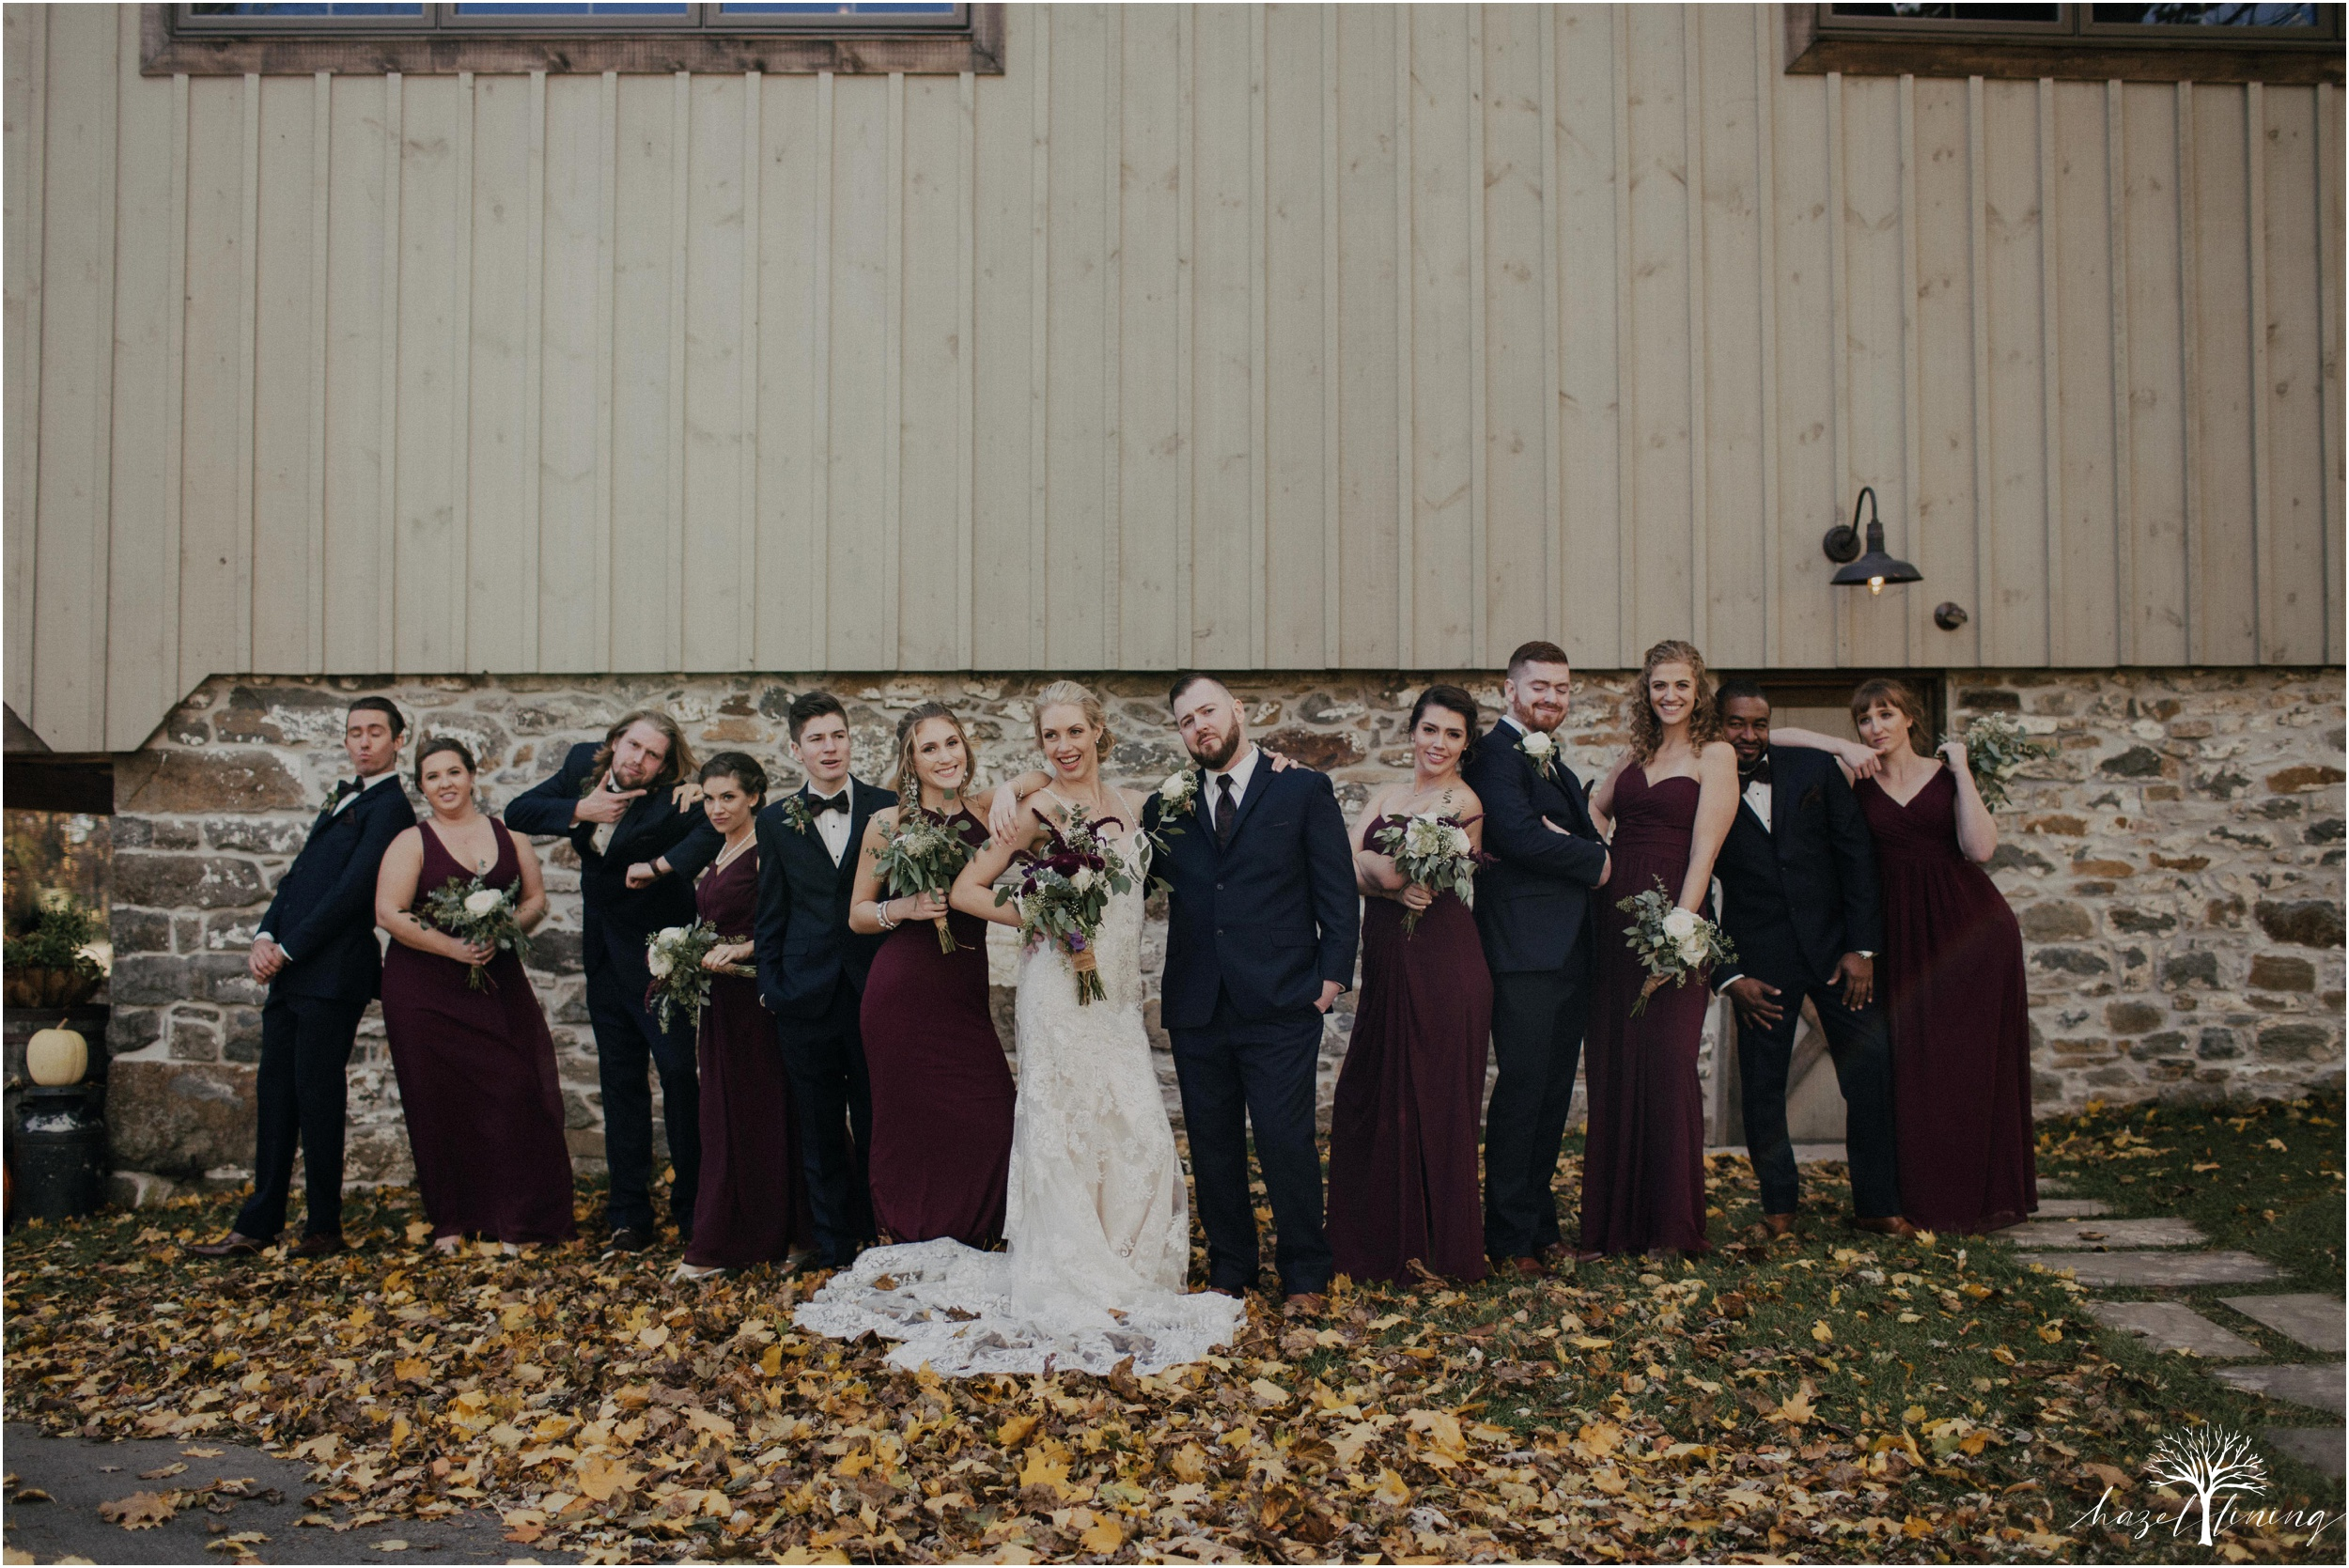 briana-krans-greg-johnston-farm-bakery-and-events-fall-wedding_0068.jpg